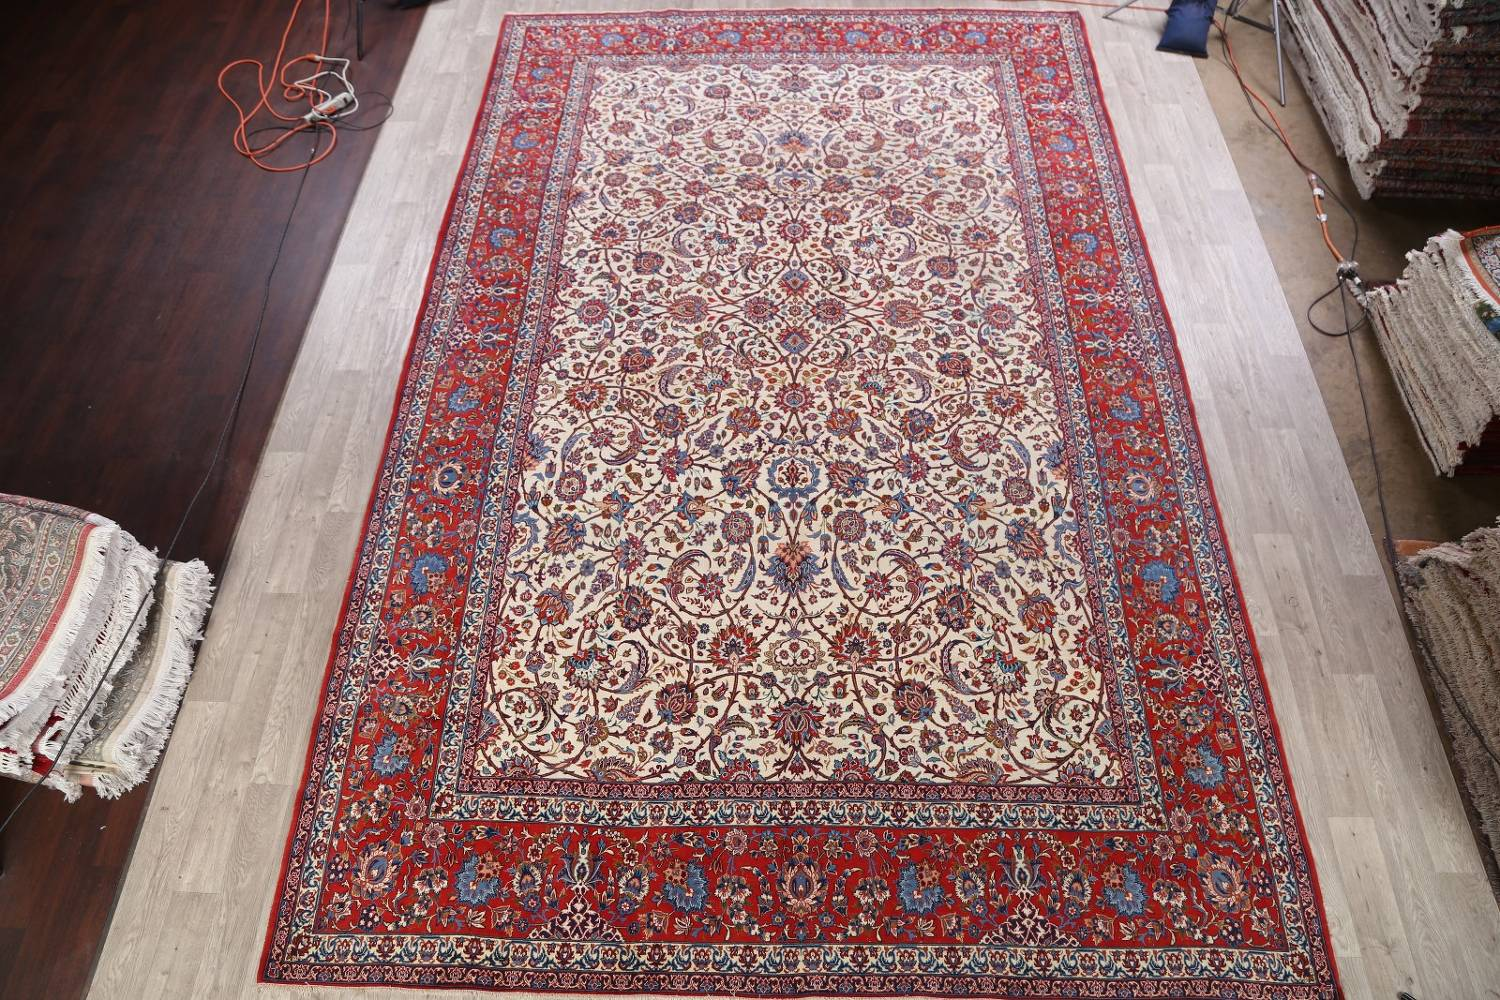 Antique Floral 10x16 Isfahan Persian Area Rug image 2